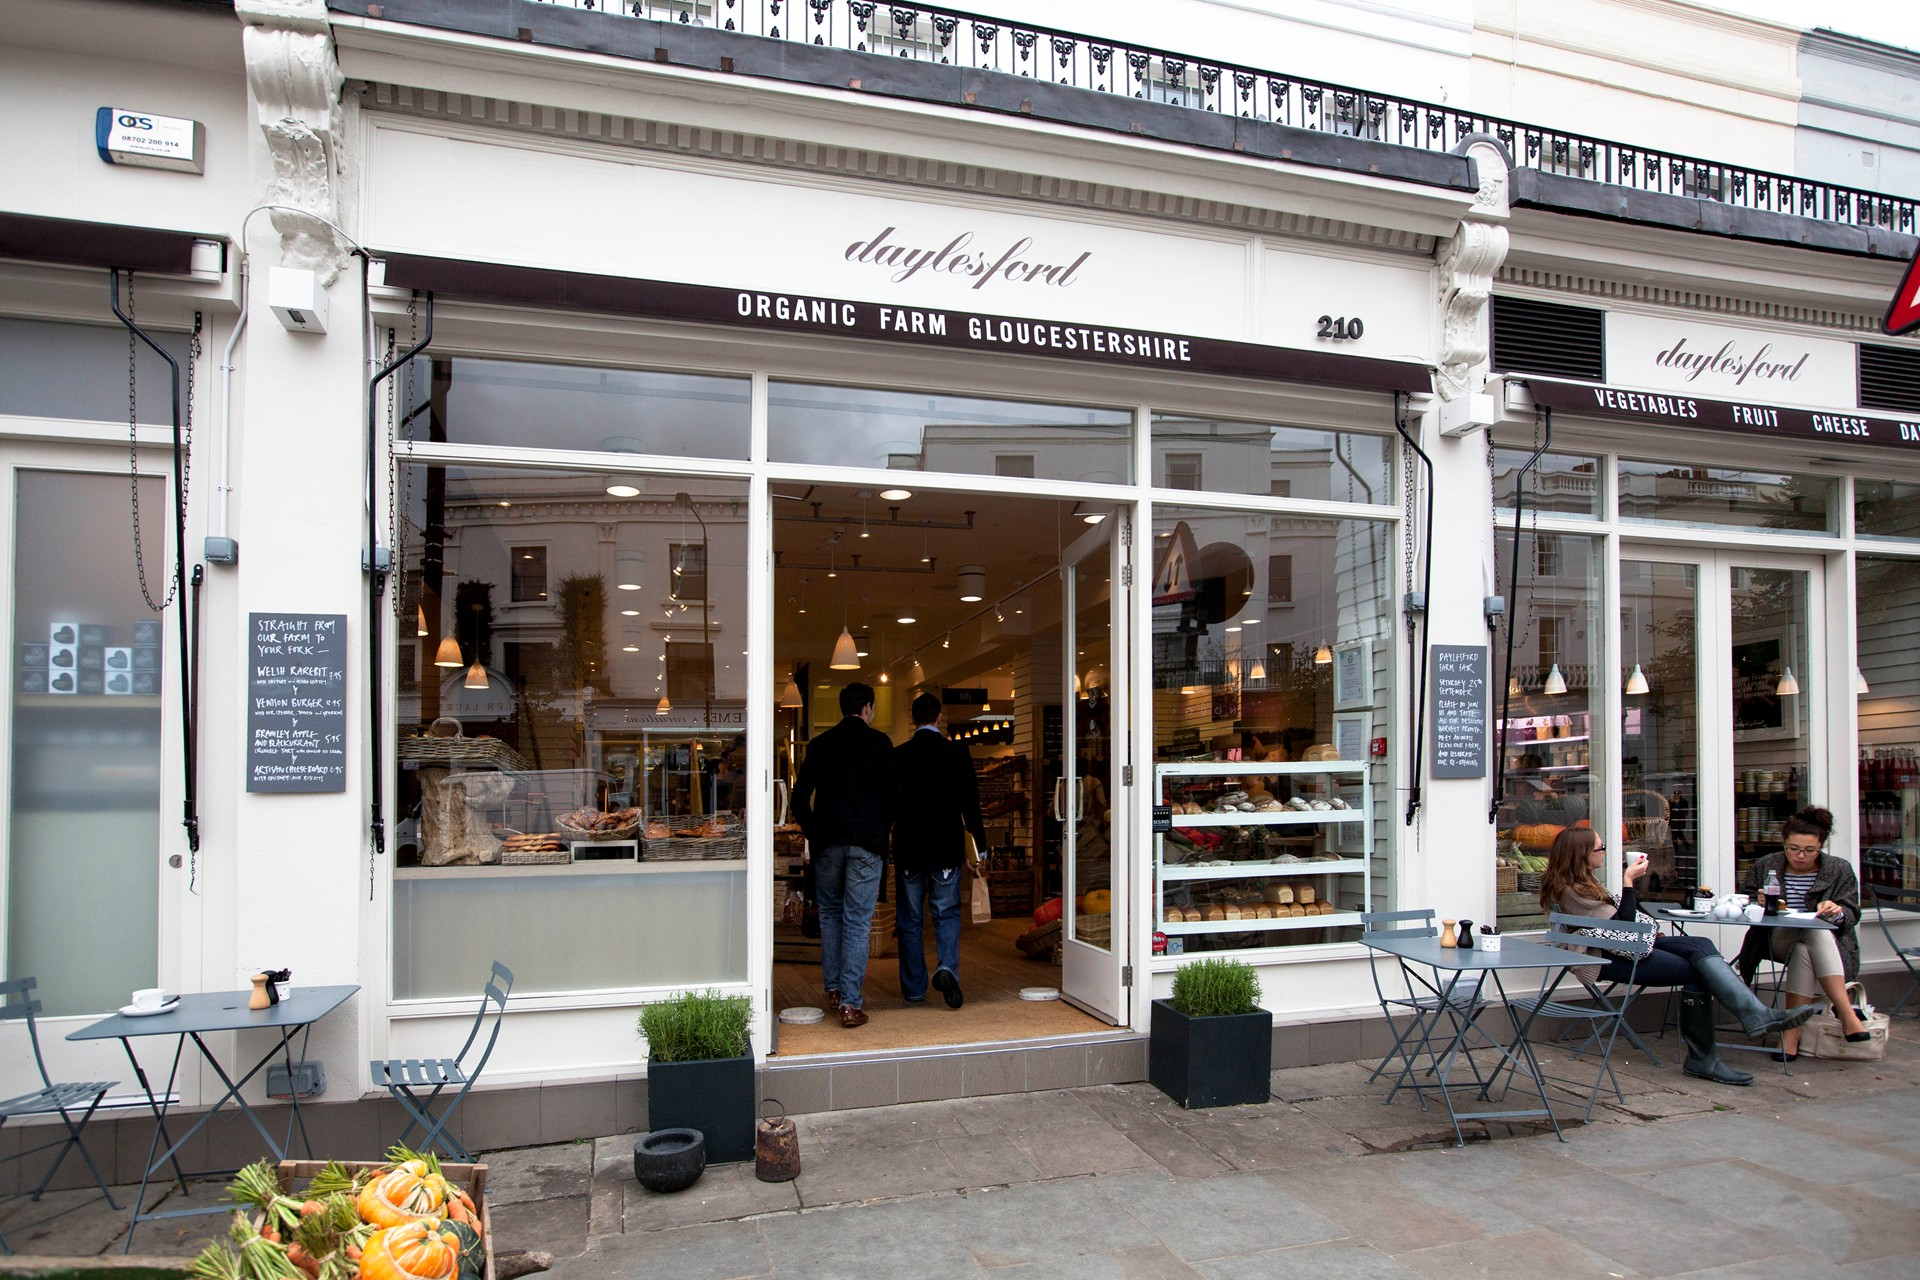 Daylesford Organic London Notting Hill